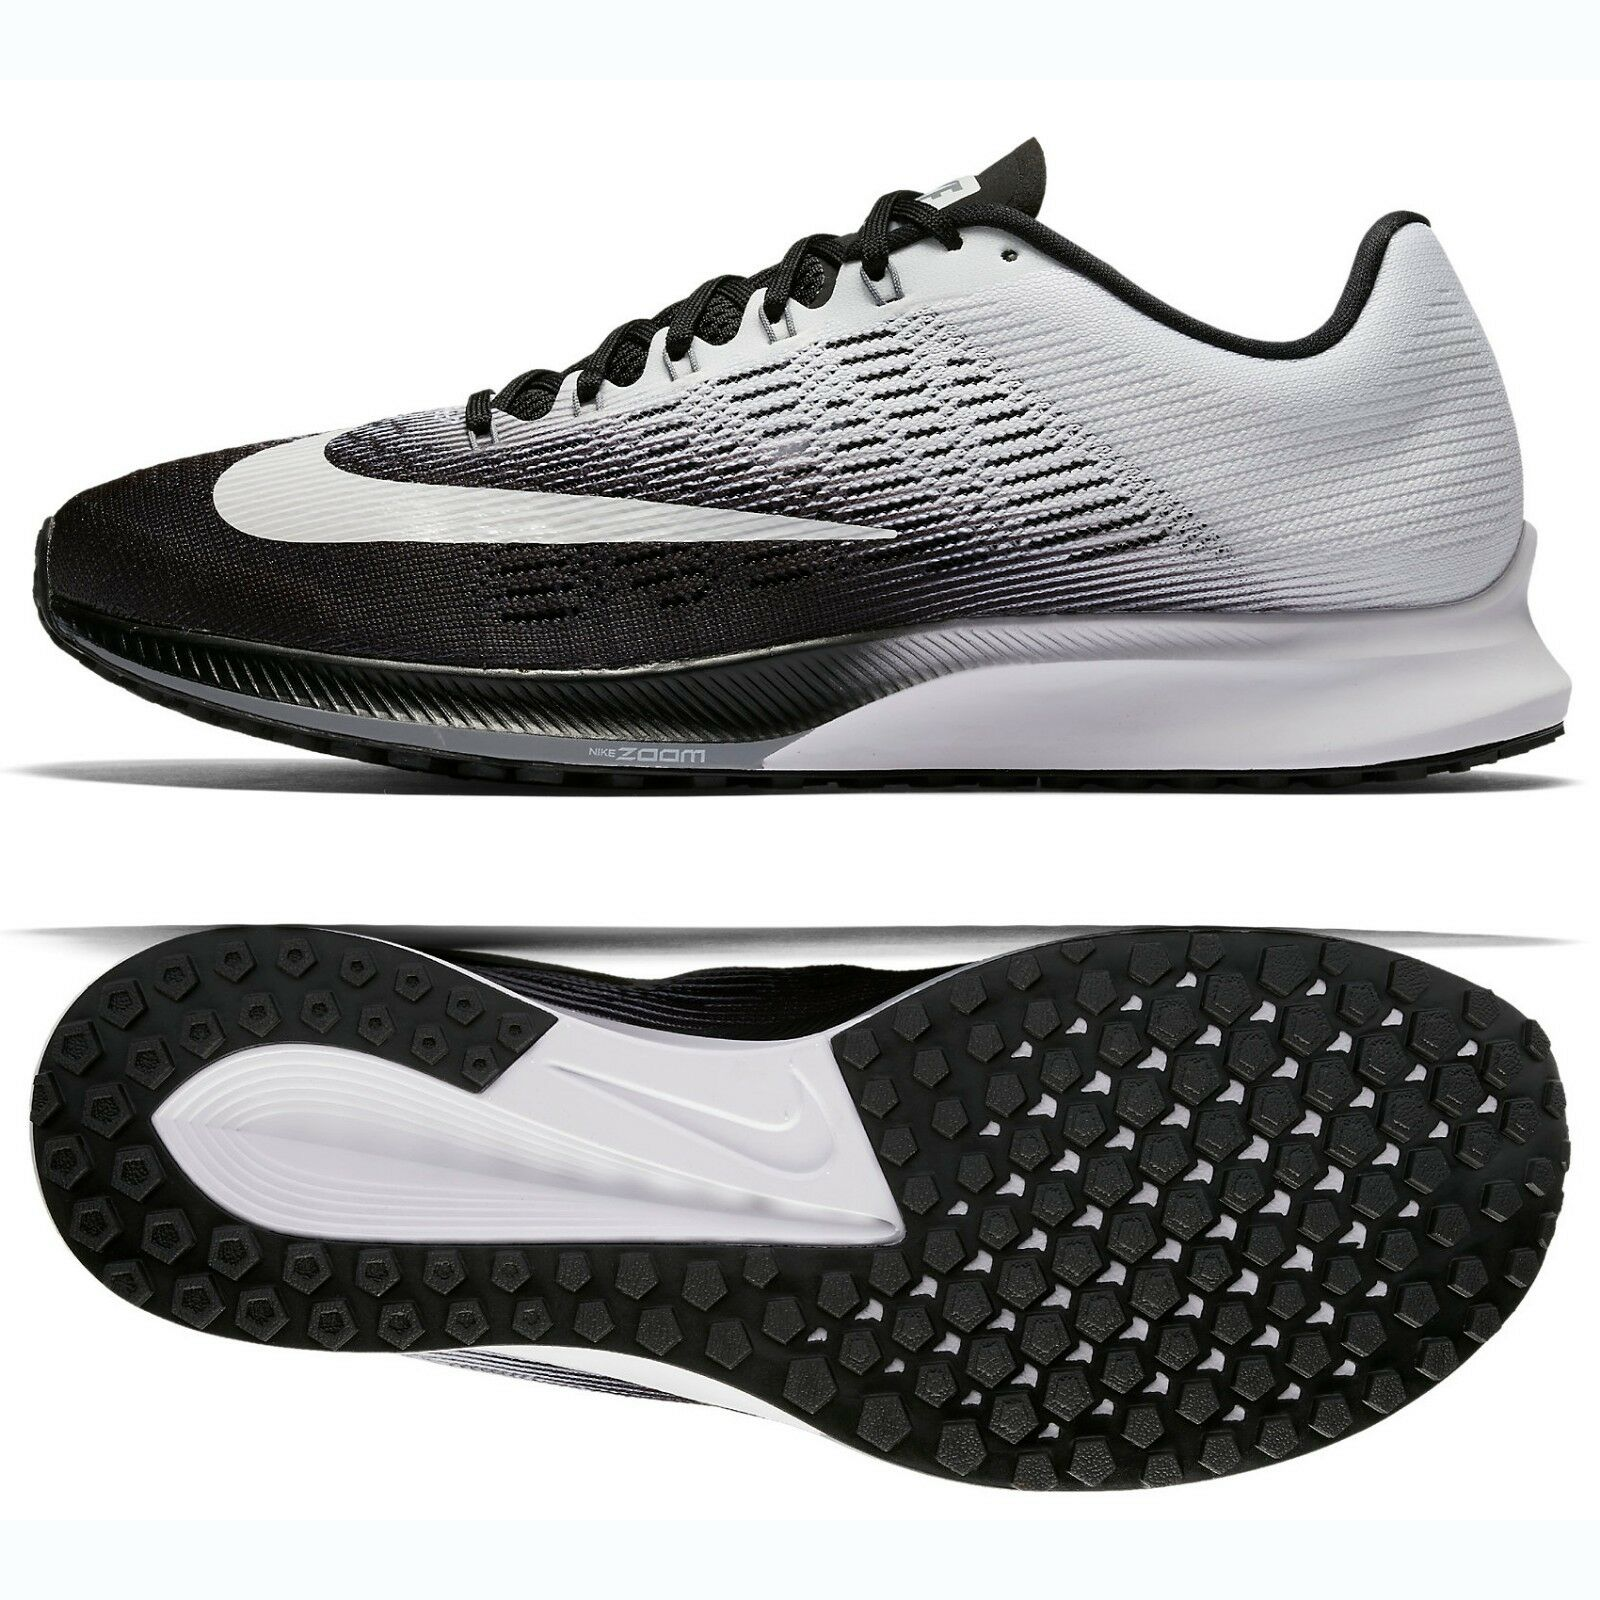 Nike Air Zoom Elite 9 863769-001 Black Stealth White Men's Running shoes